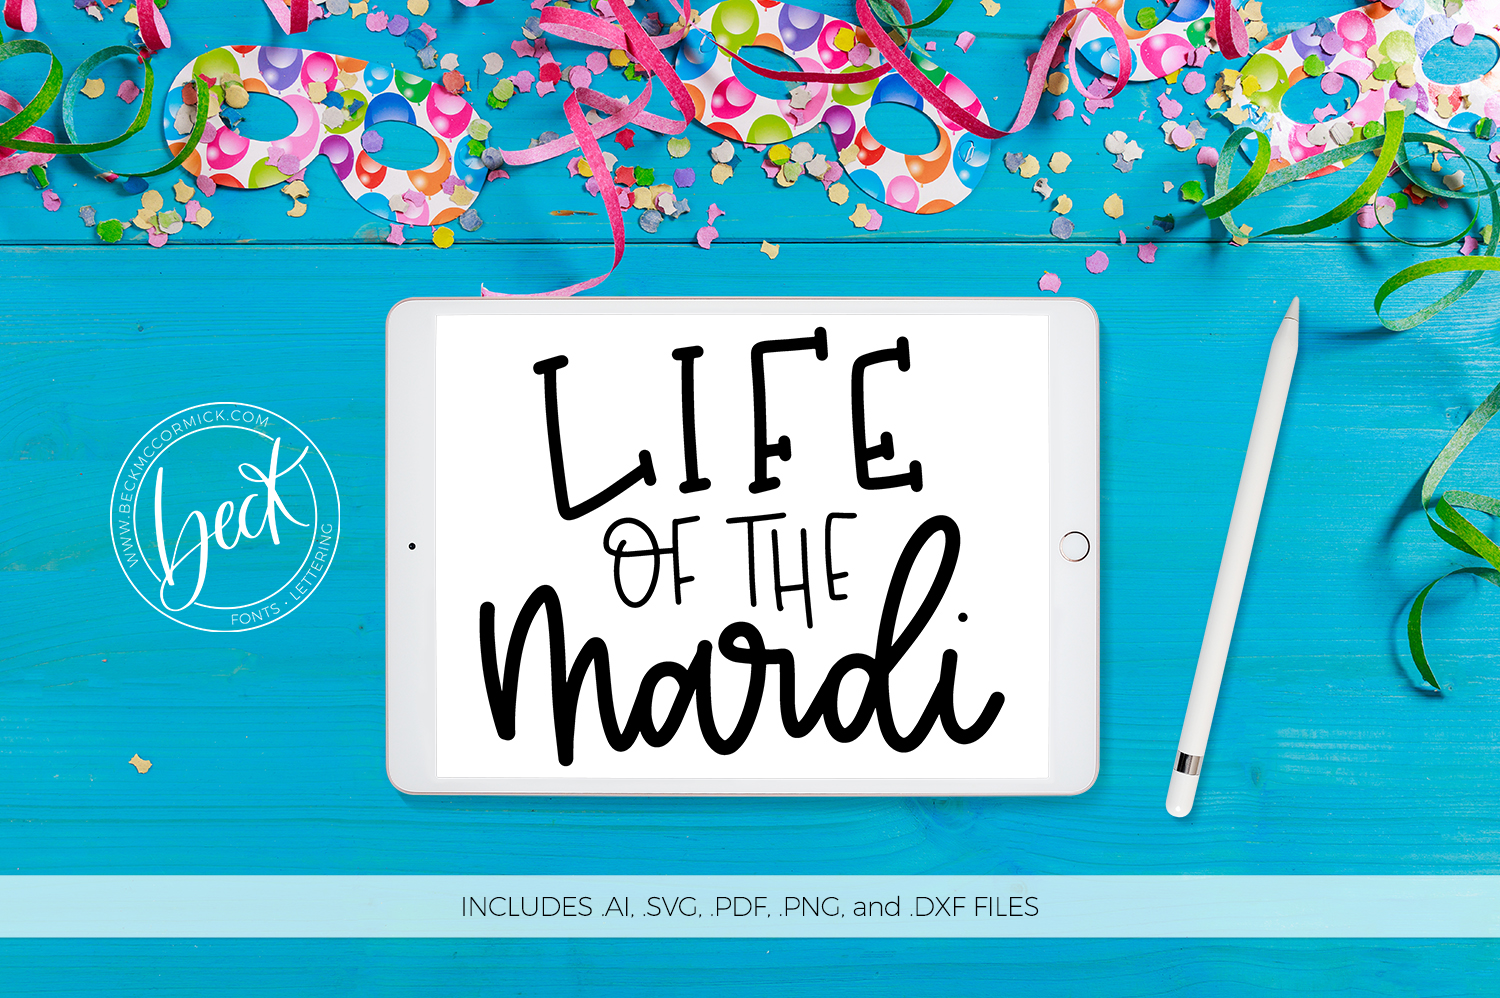 Download Free Life Of The Mardi Graphic By Beckmccormick Creative Fabrica for Cricut Explore, Silhouette and other cutting machines.